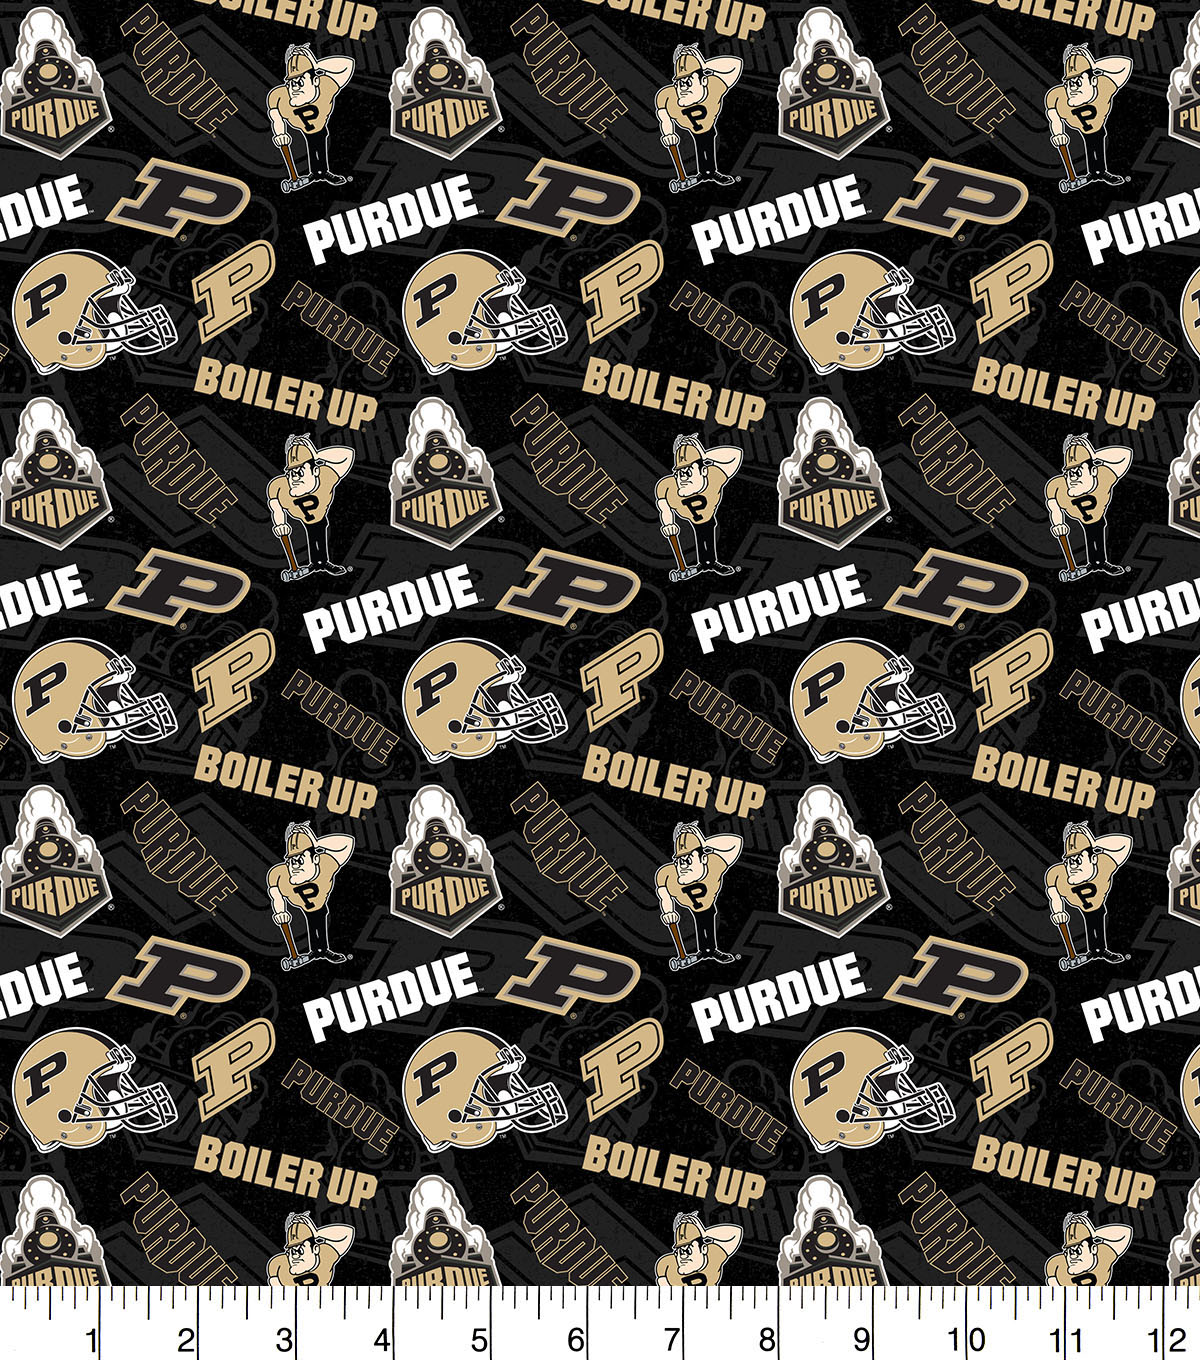 Purdue University Boilermakers Cotton Fabric-Tone on Tone